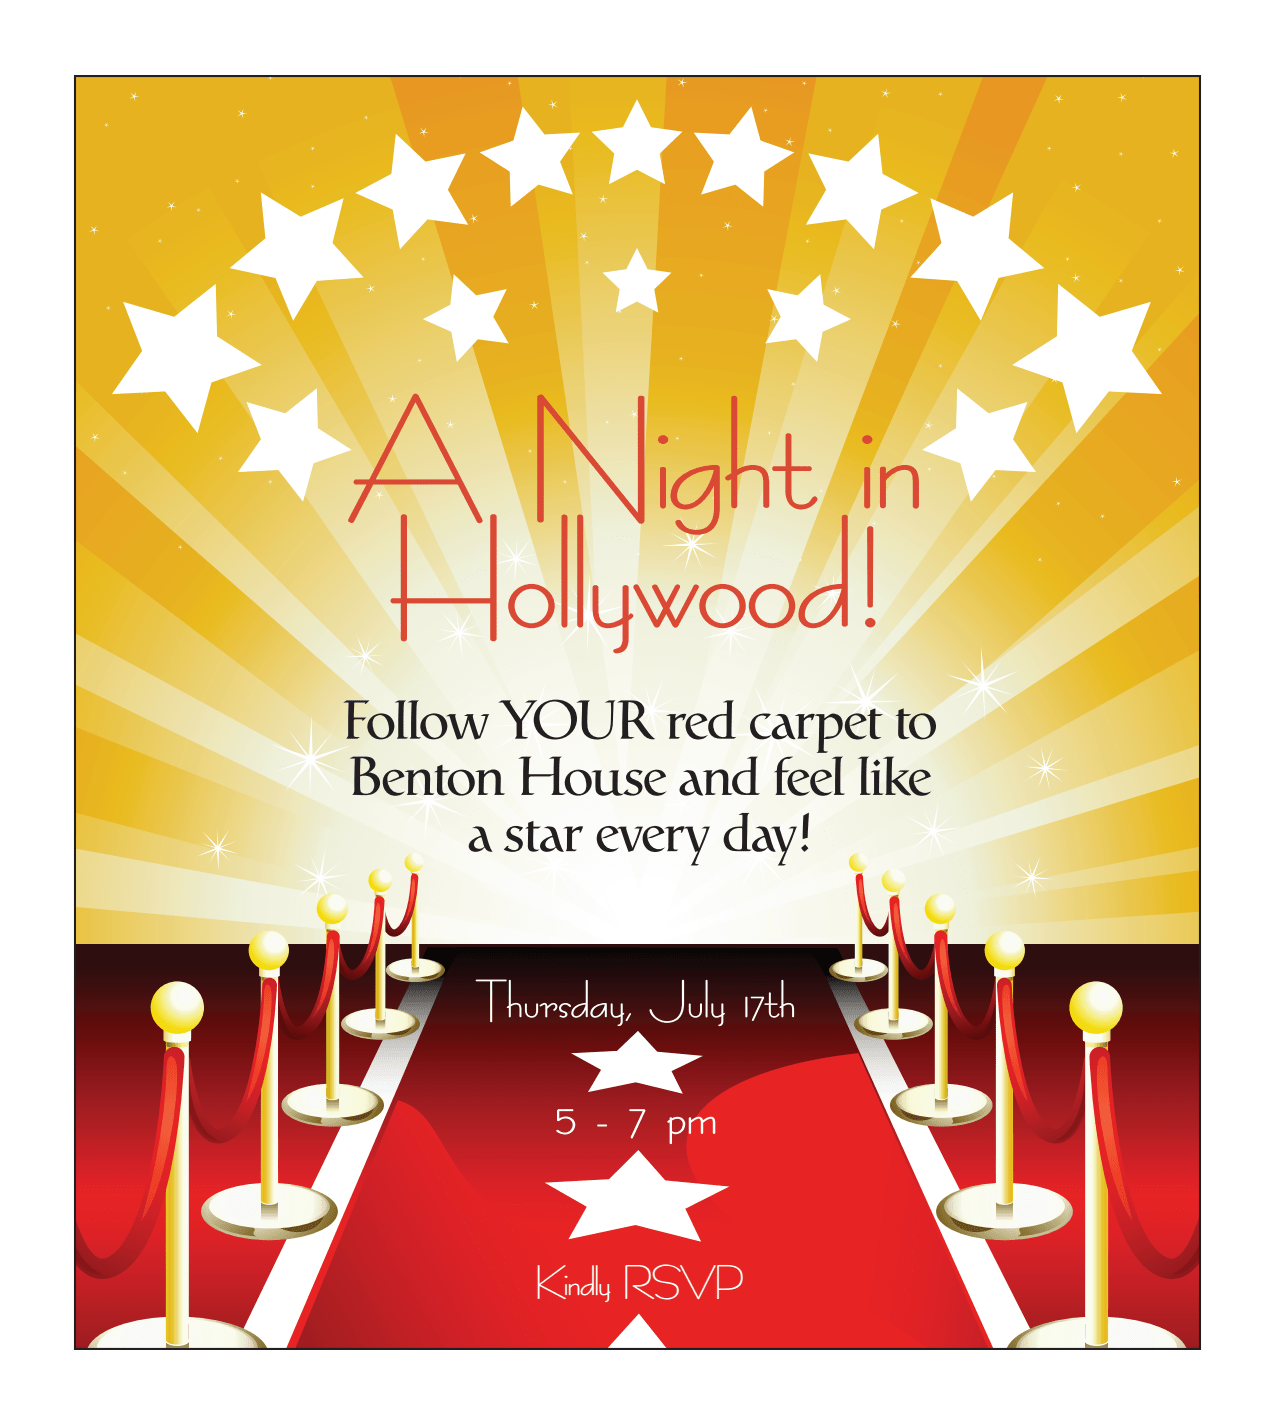 A Night in Hollywood - activities at Benton House of Staley Hills in Kansas City, MO